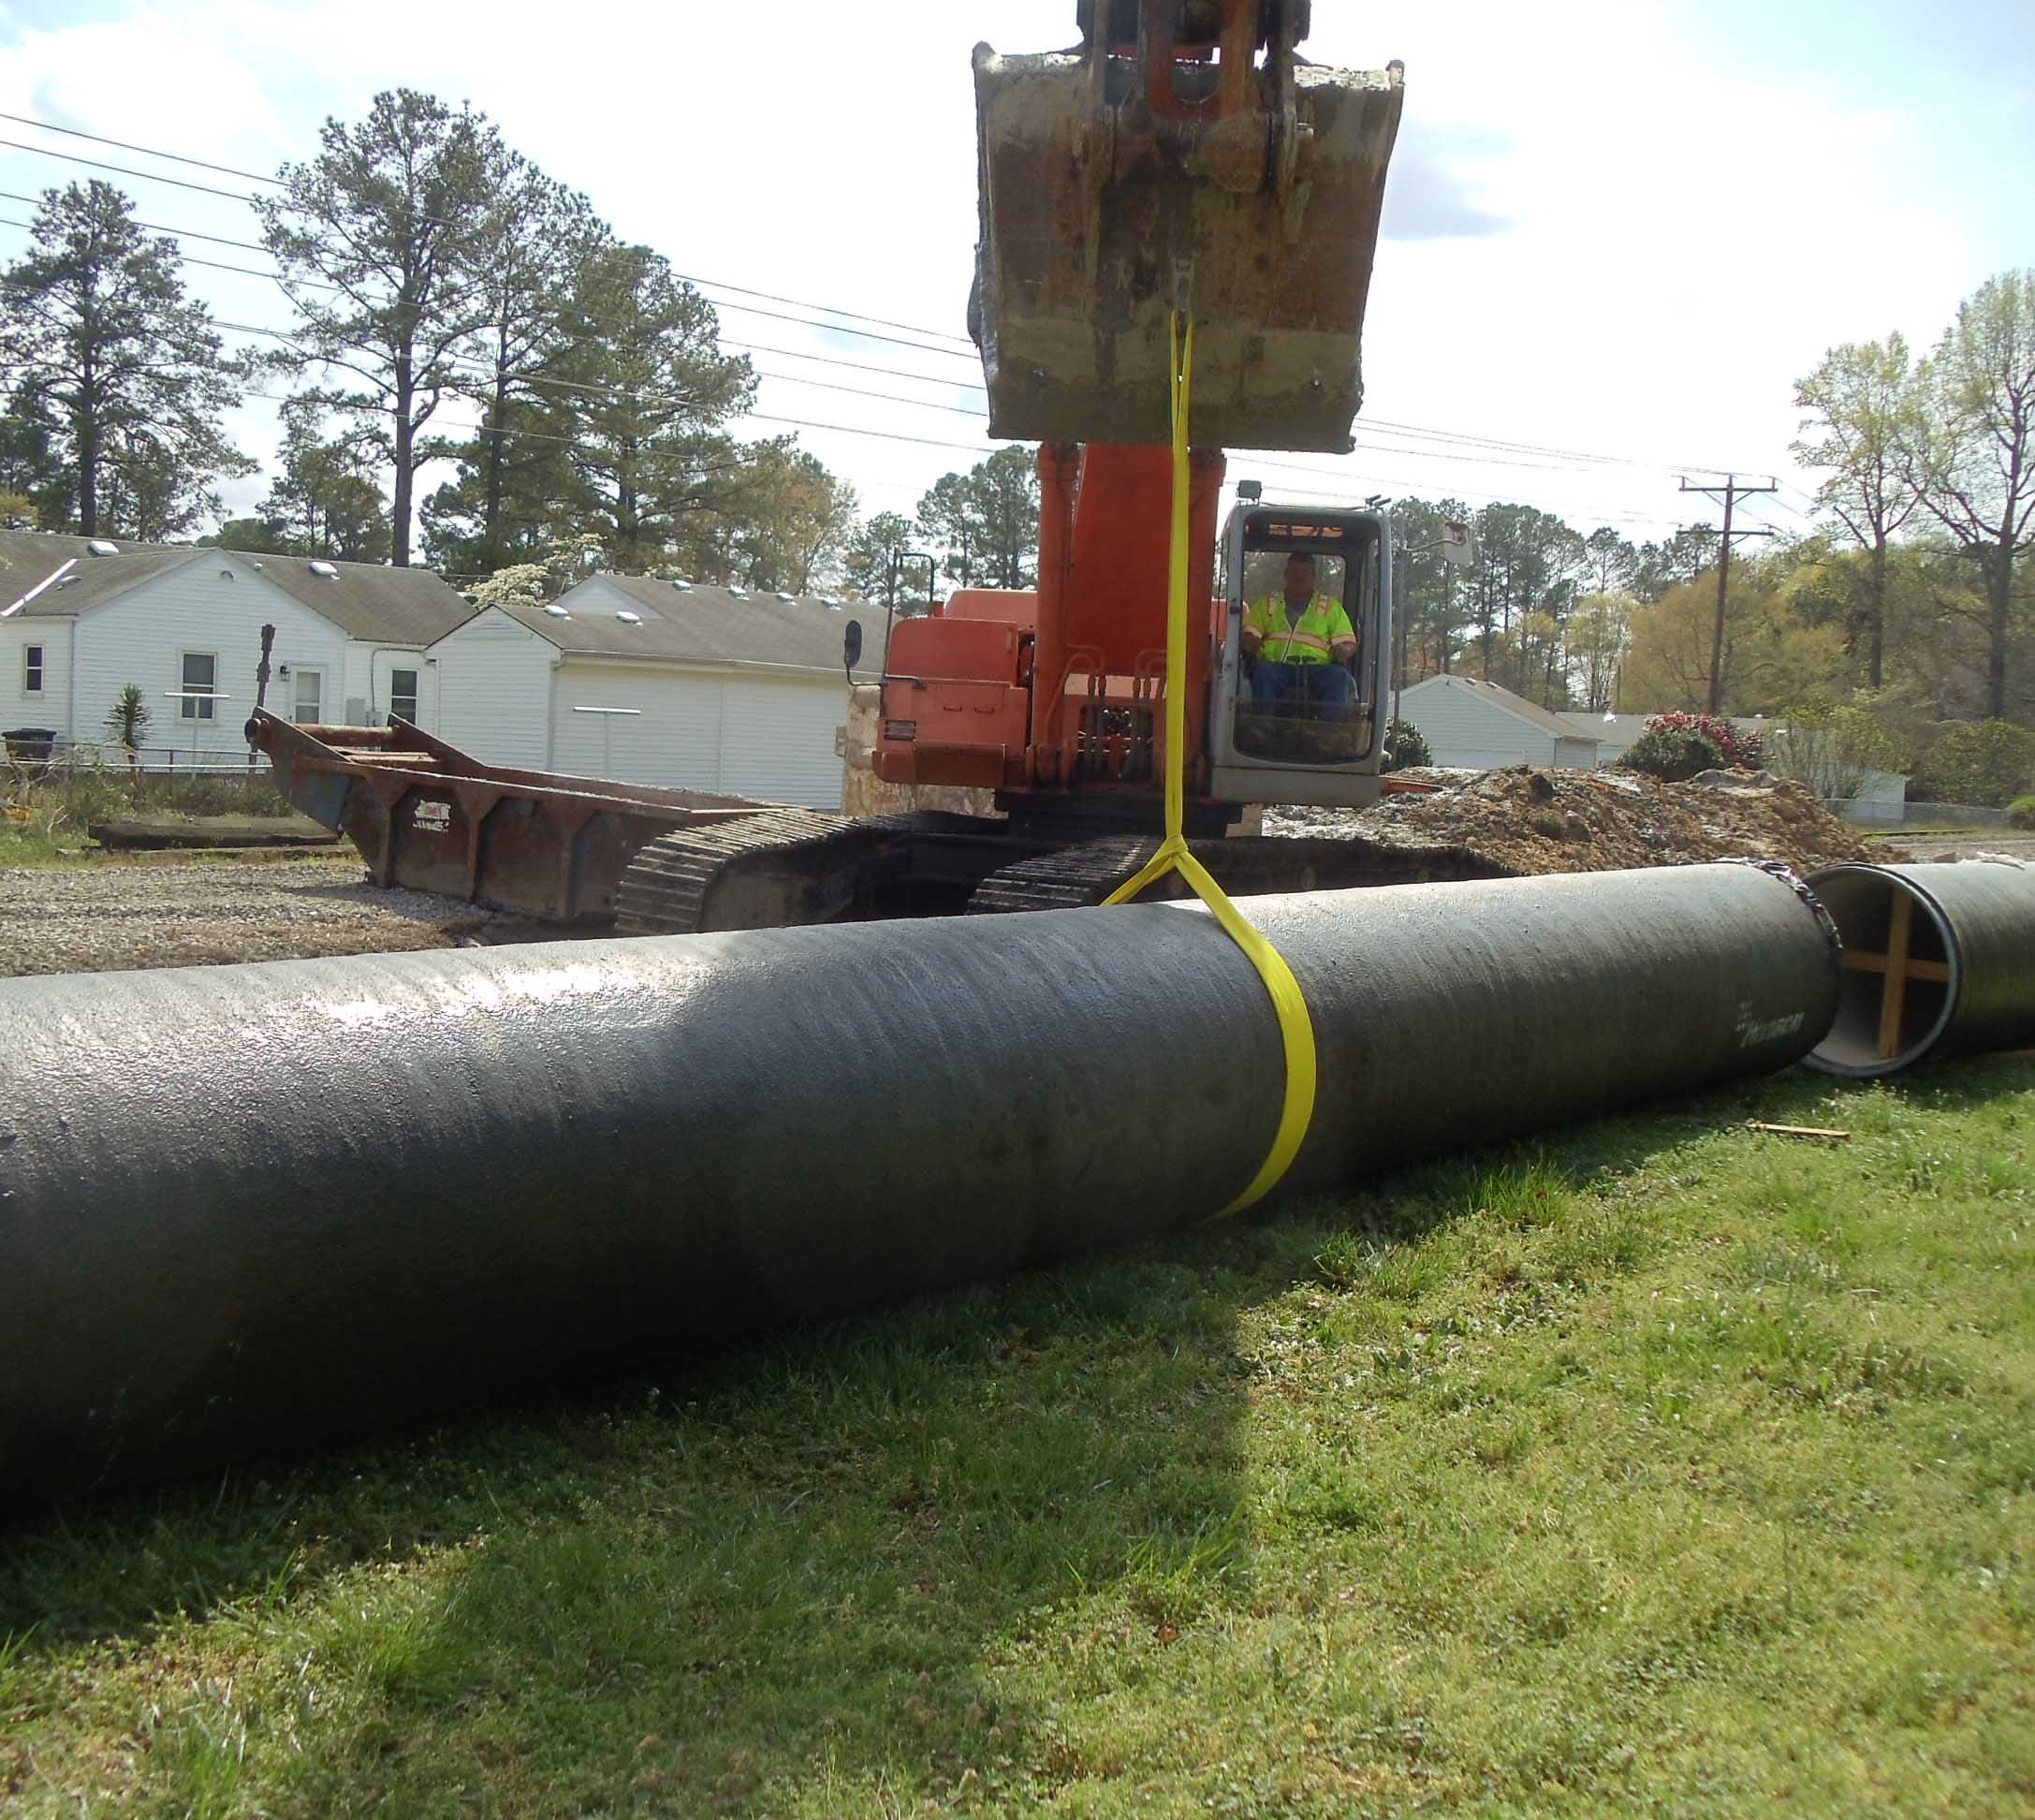 Norfolk Replaces 92 Year Old Pipe With Hanson Pressure Pipe